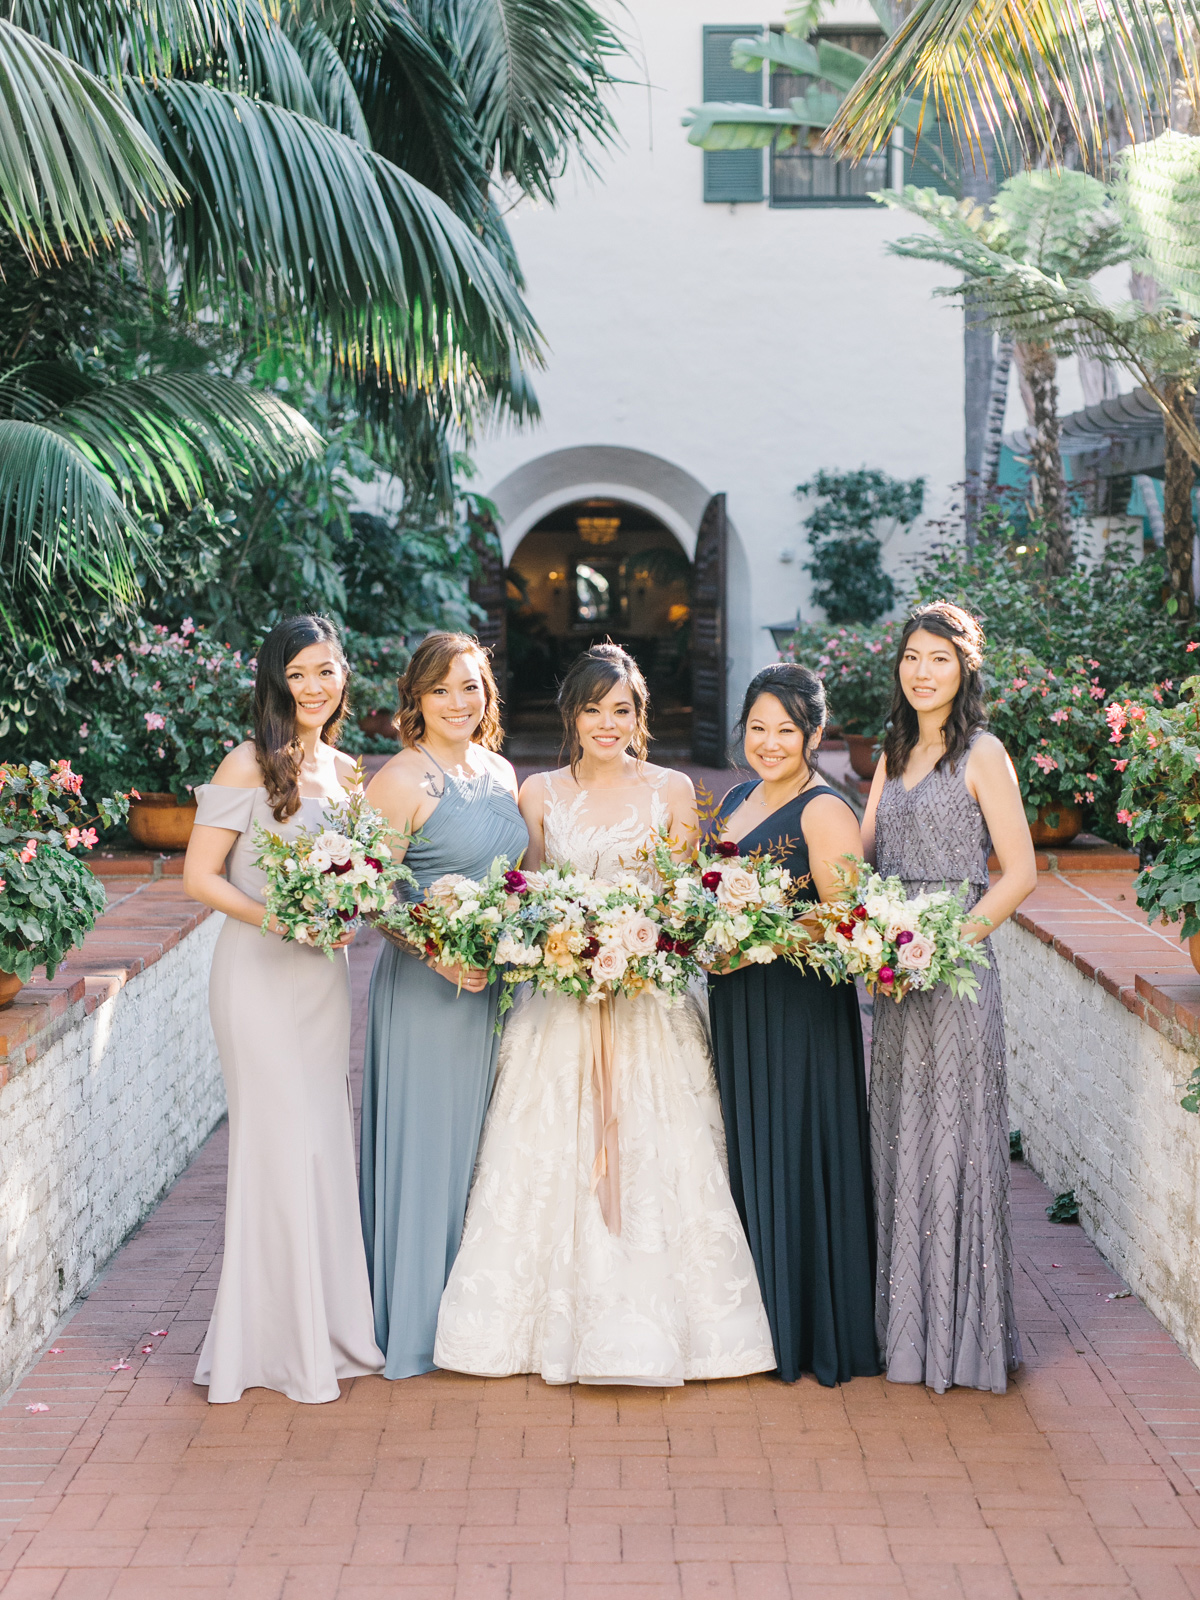 bride and bridesmaids in shades of blue in courtyard